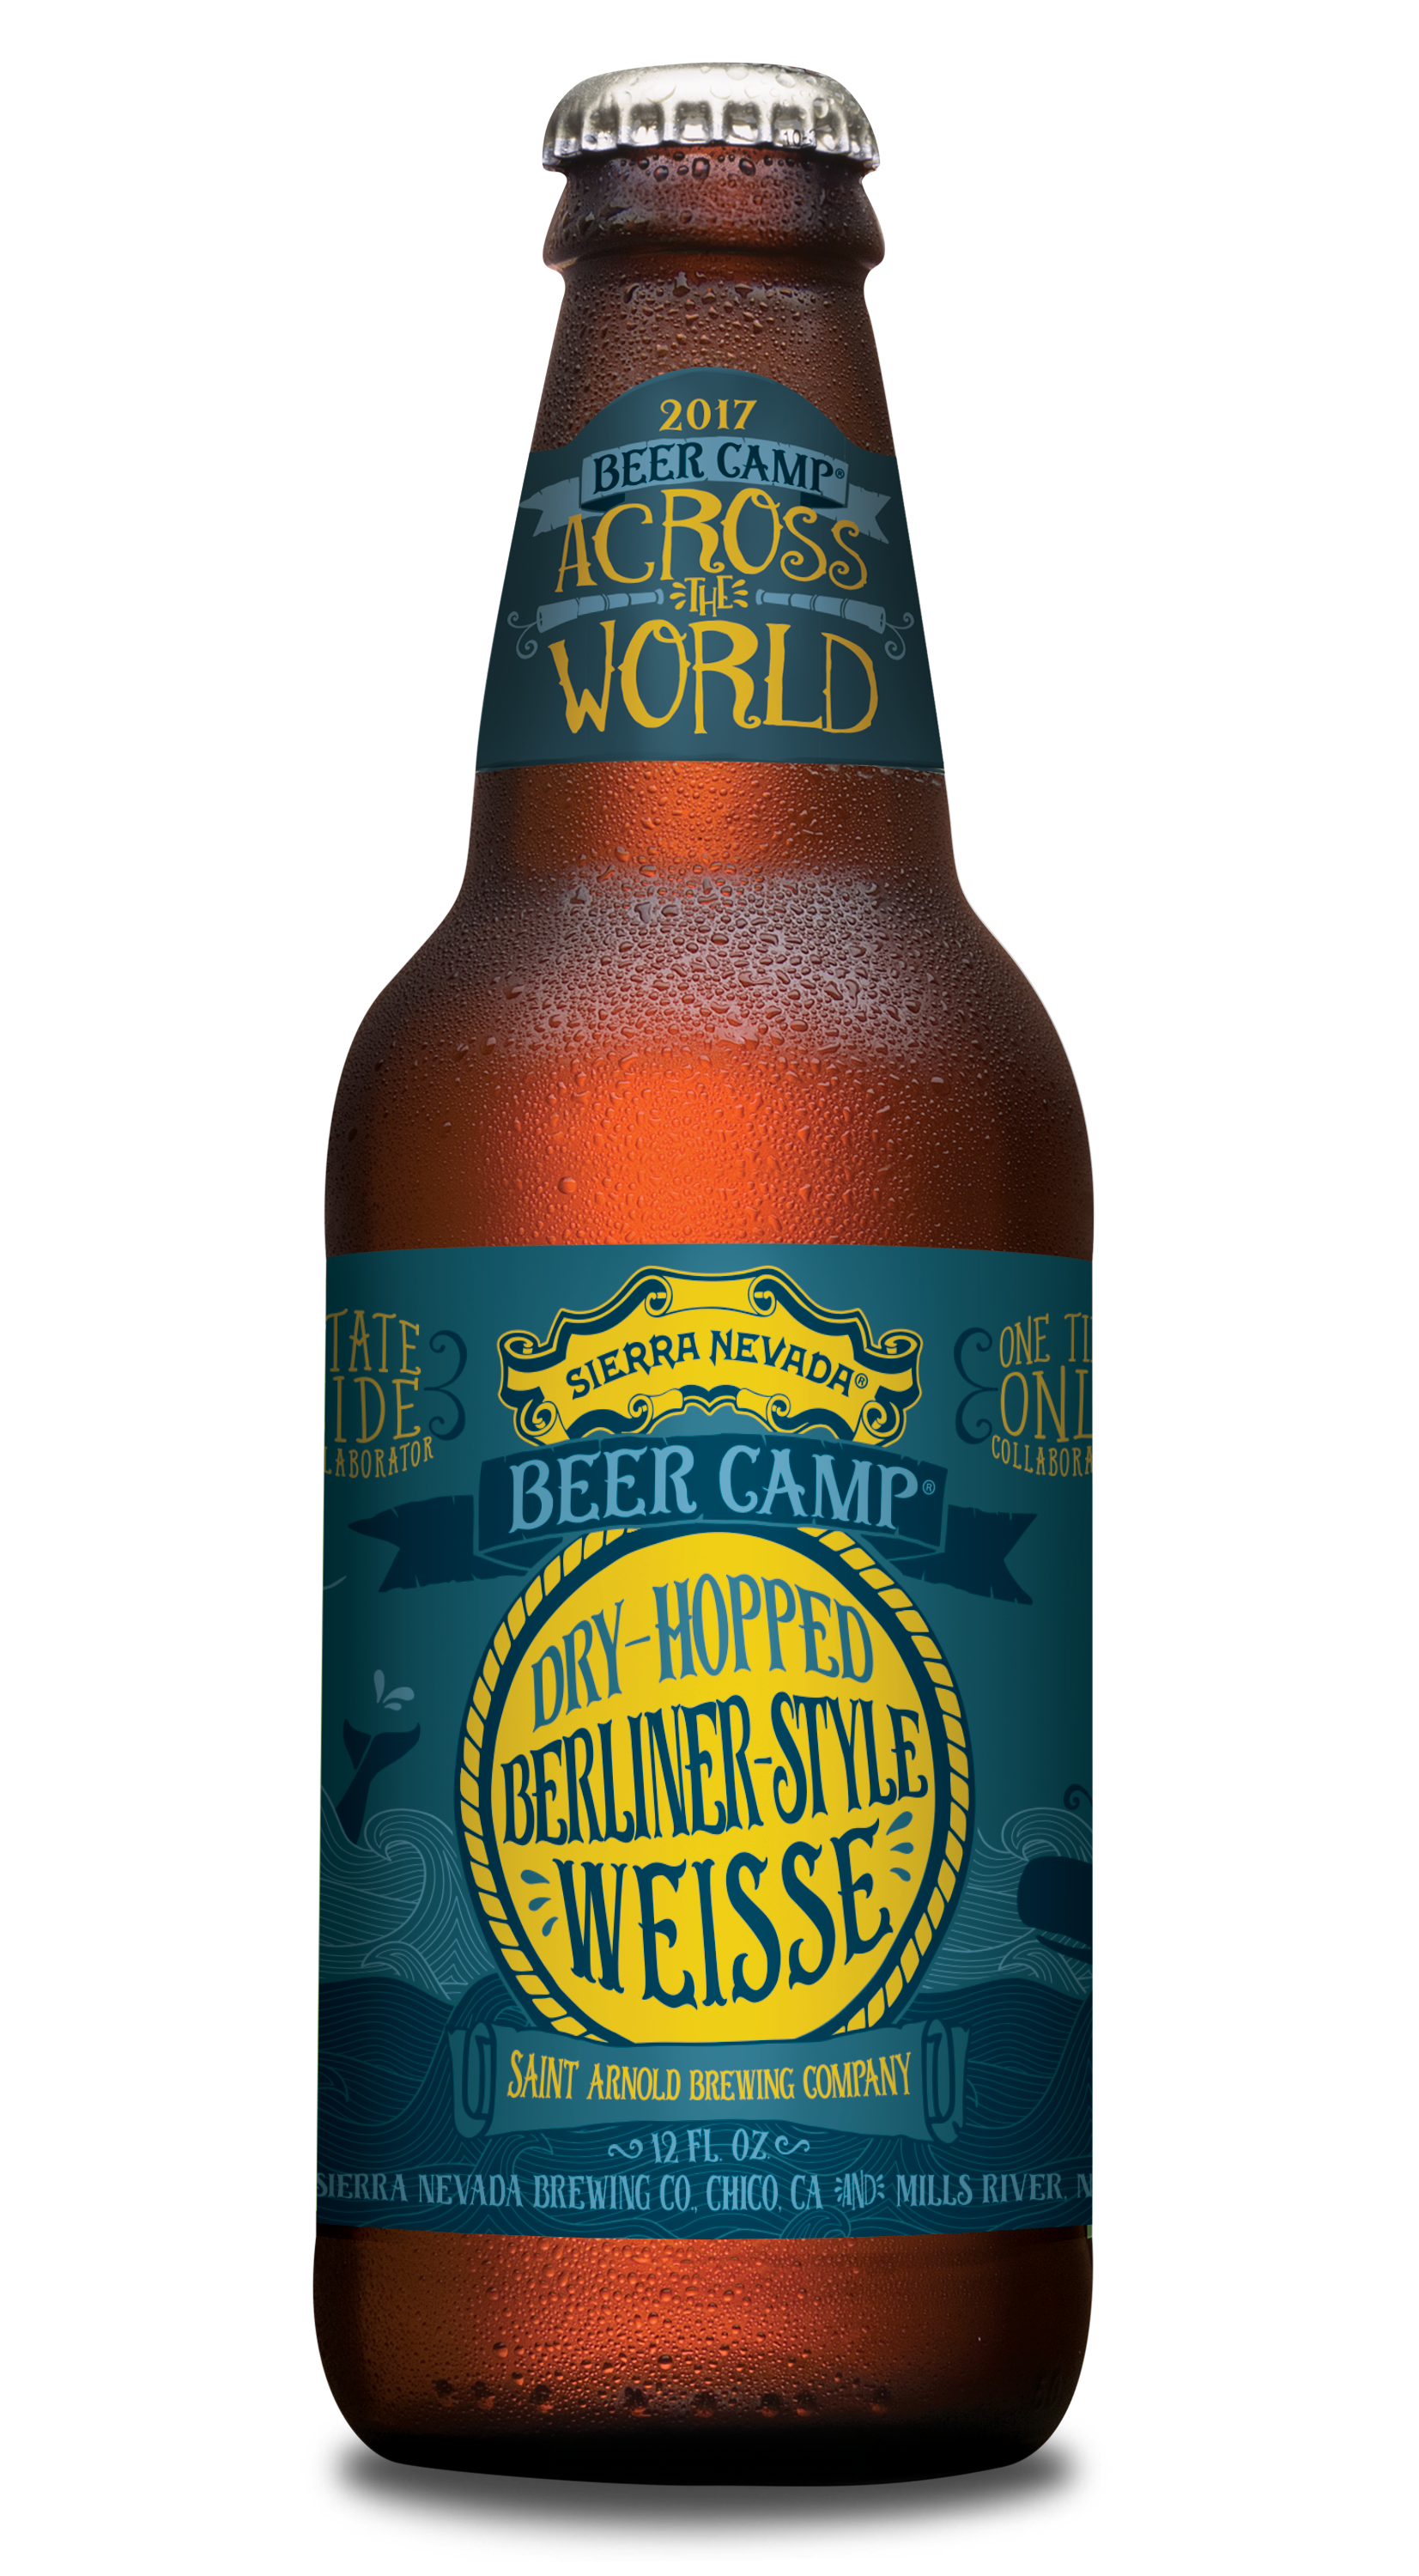 St Arnold Beer Camp Bottle